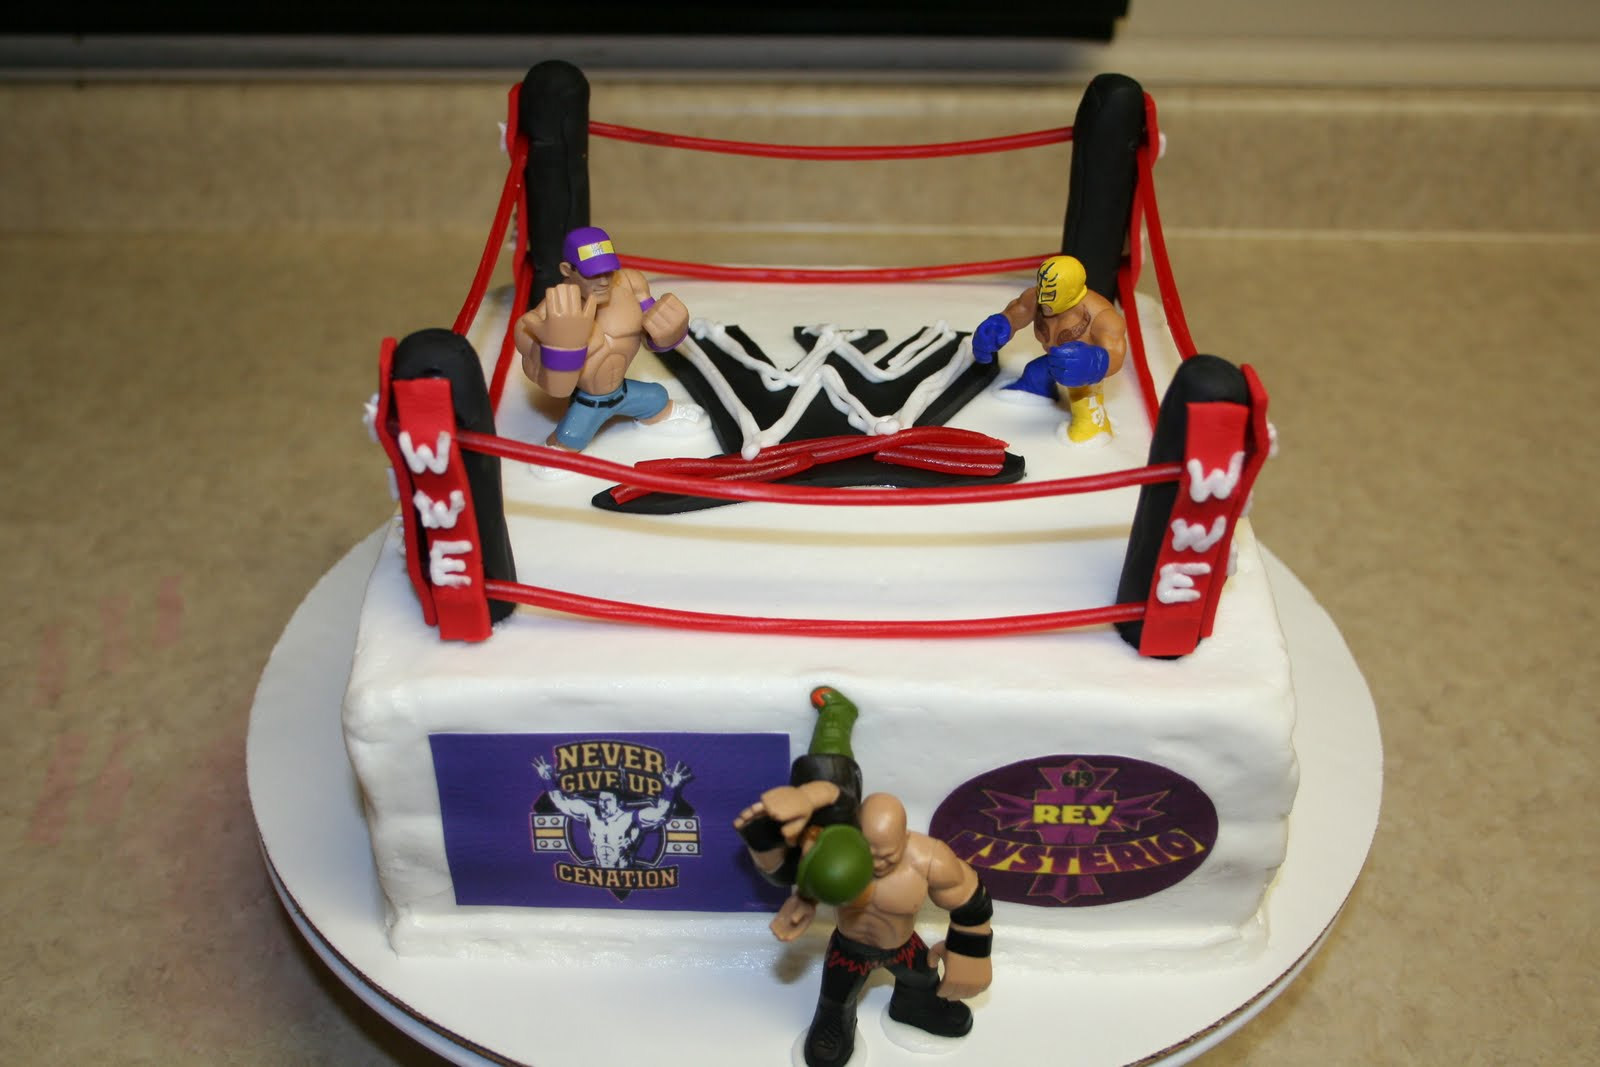 Superb Wwe Cakes Decoration Ideas Little Birthday Cakes Personalised Birthday Cards Cominlily Jamesorg